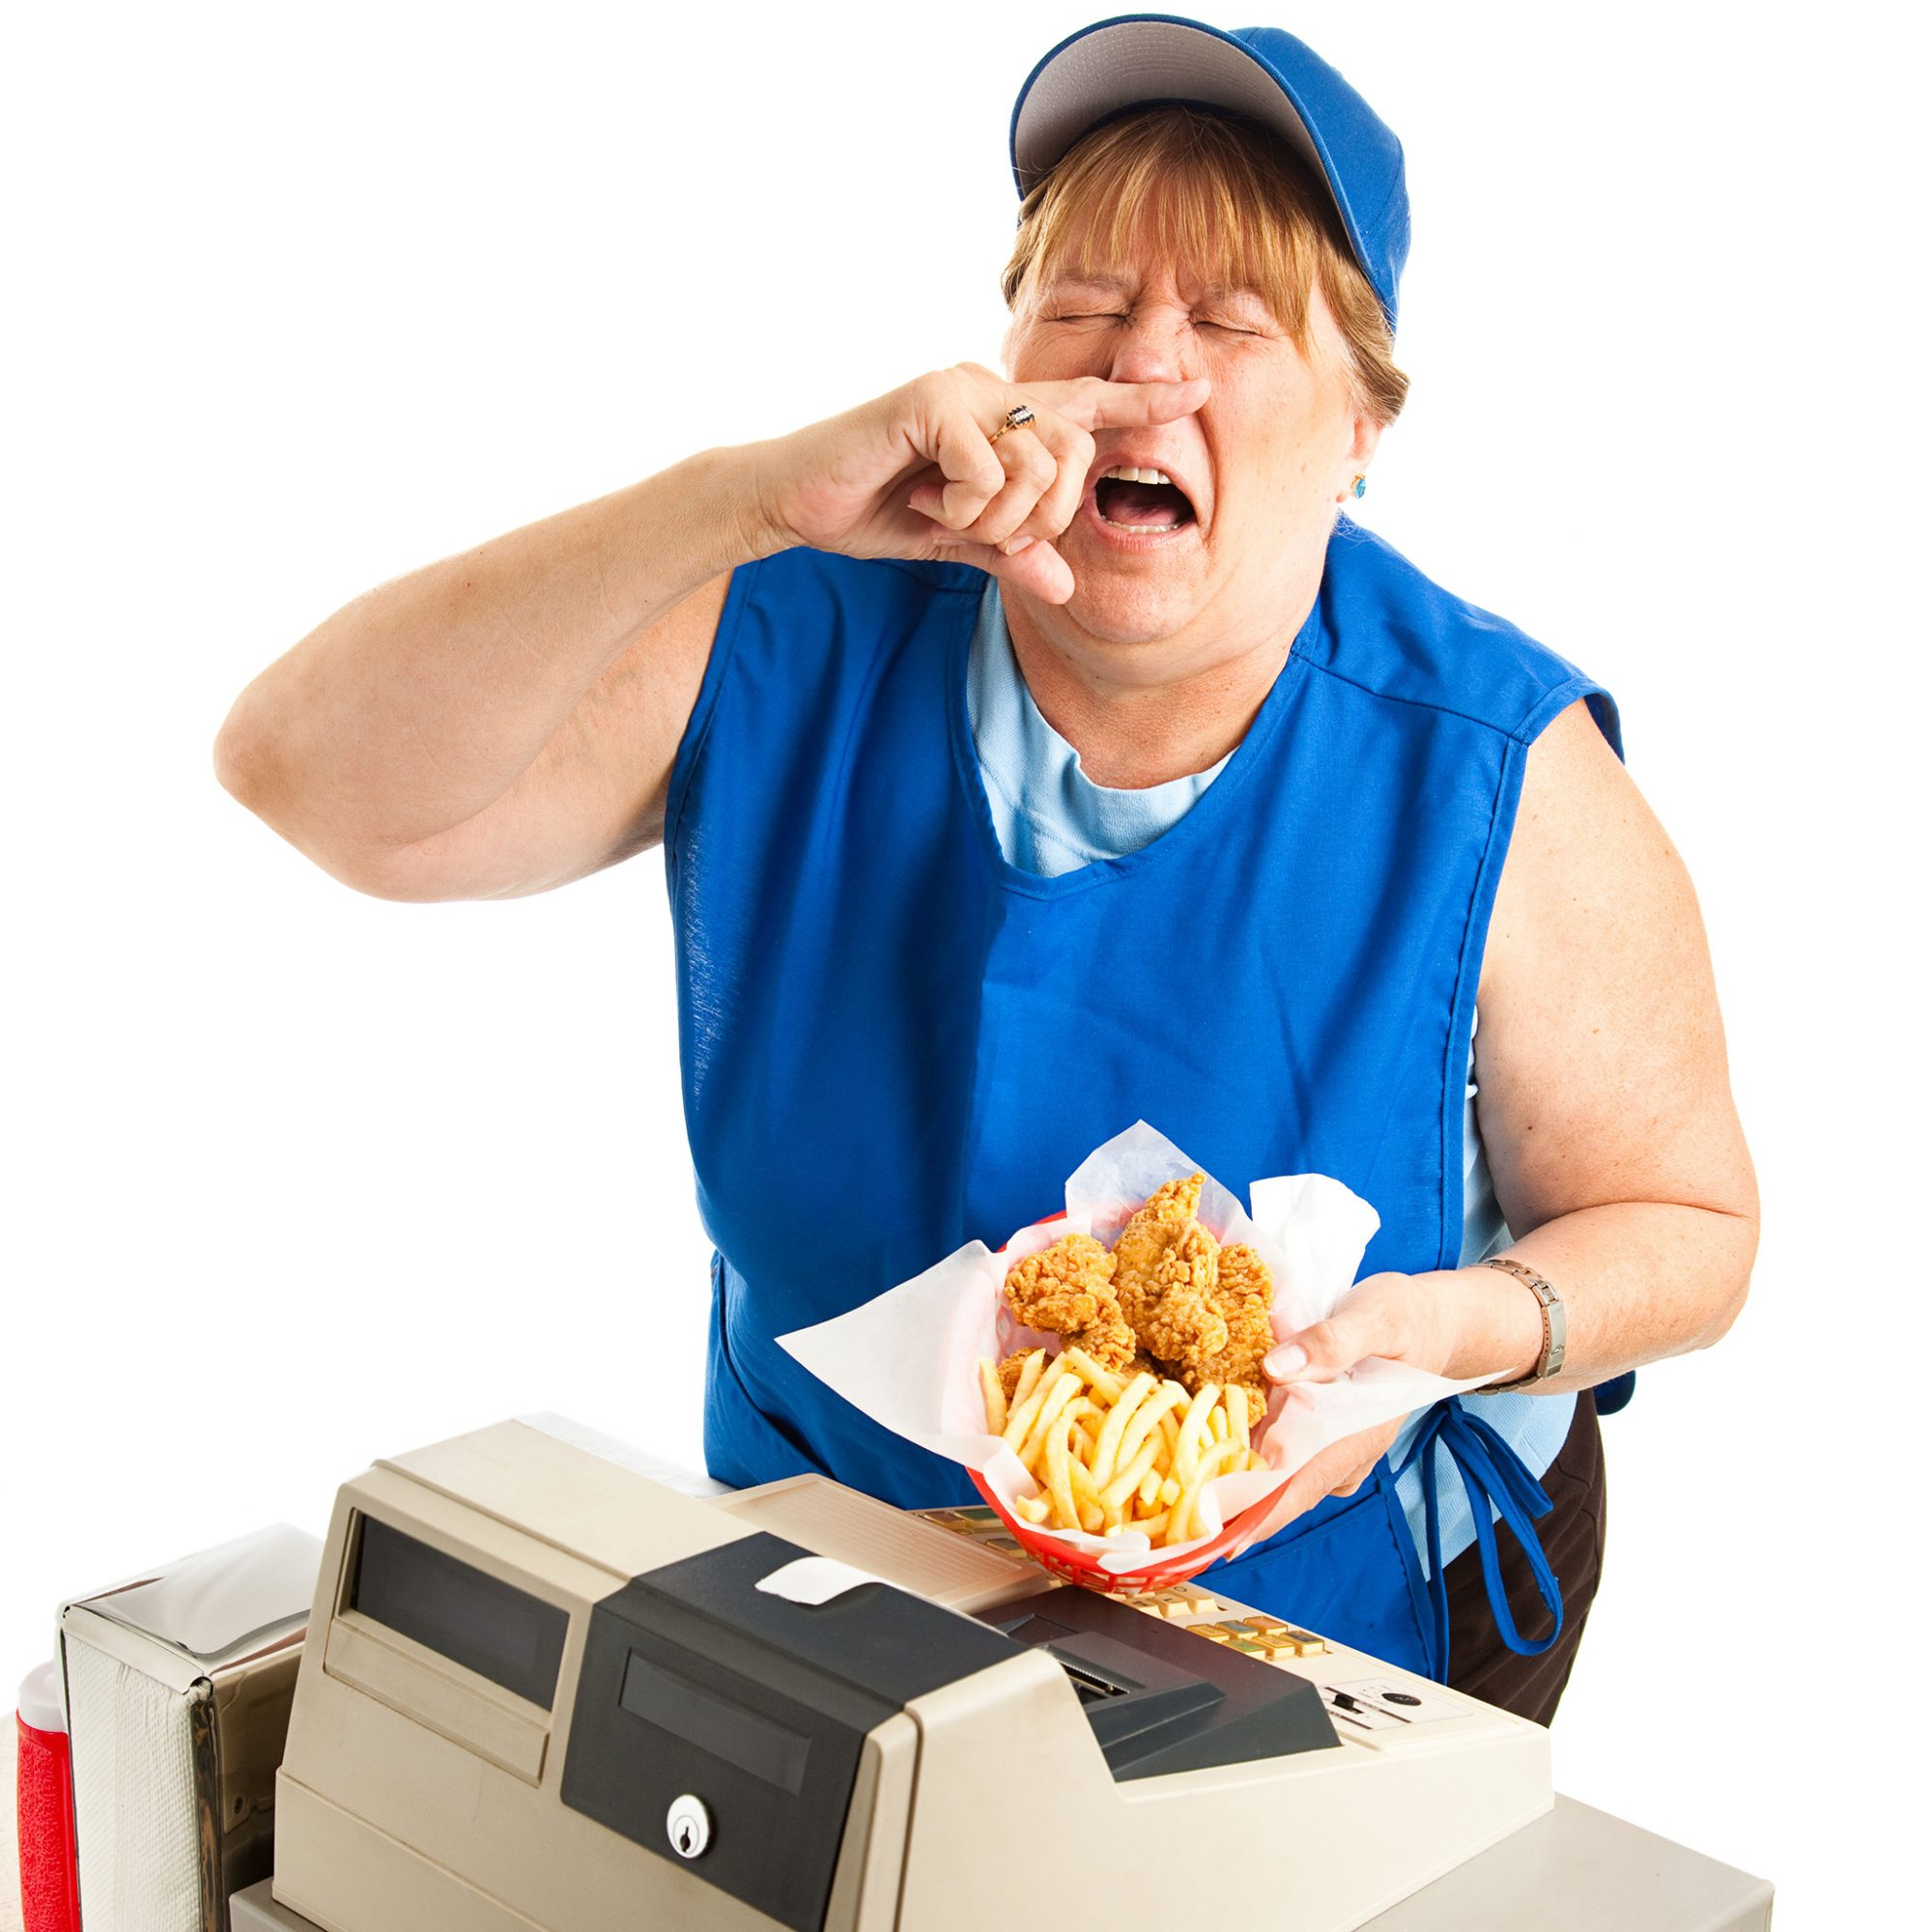 FWX SICK FAST FOOD WORKERS